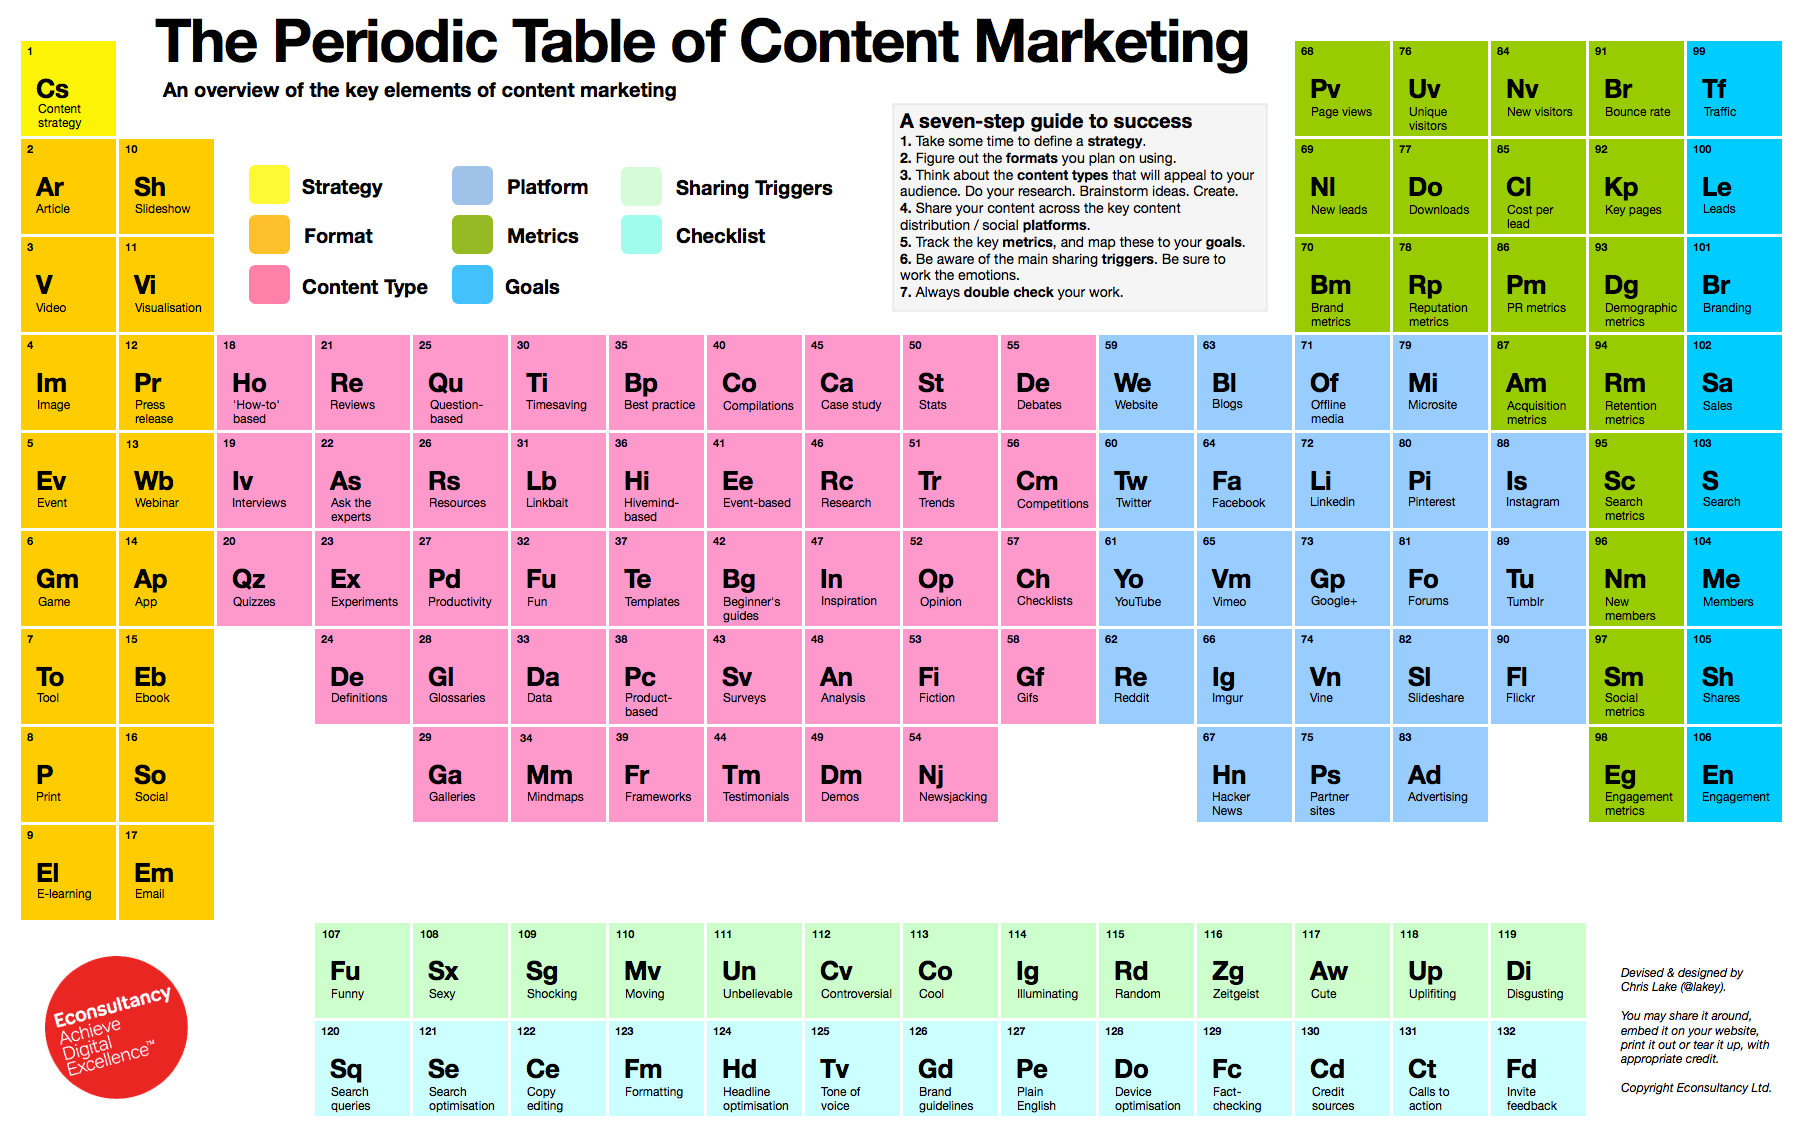 Periodic Table of Content Marketing free download